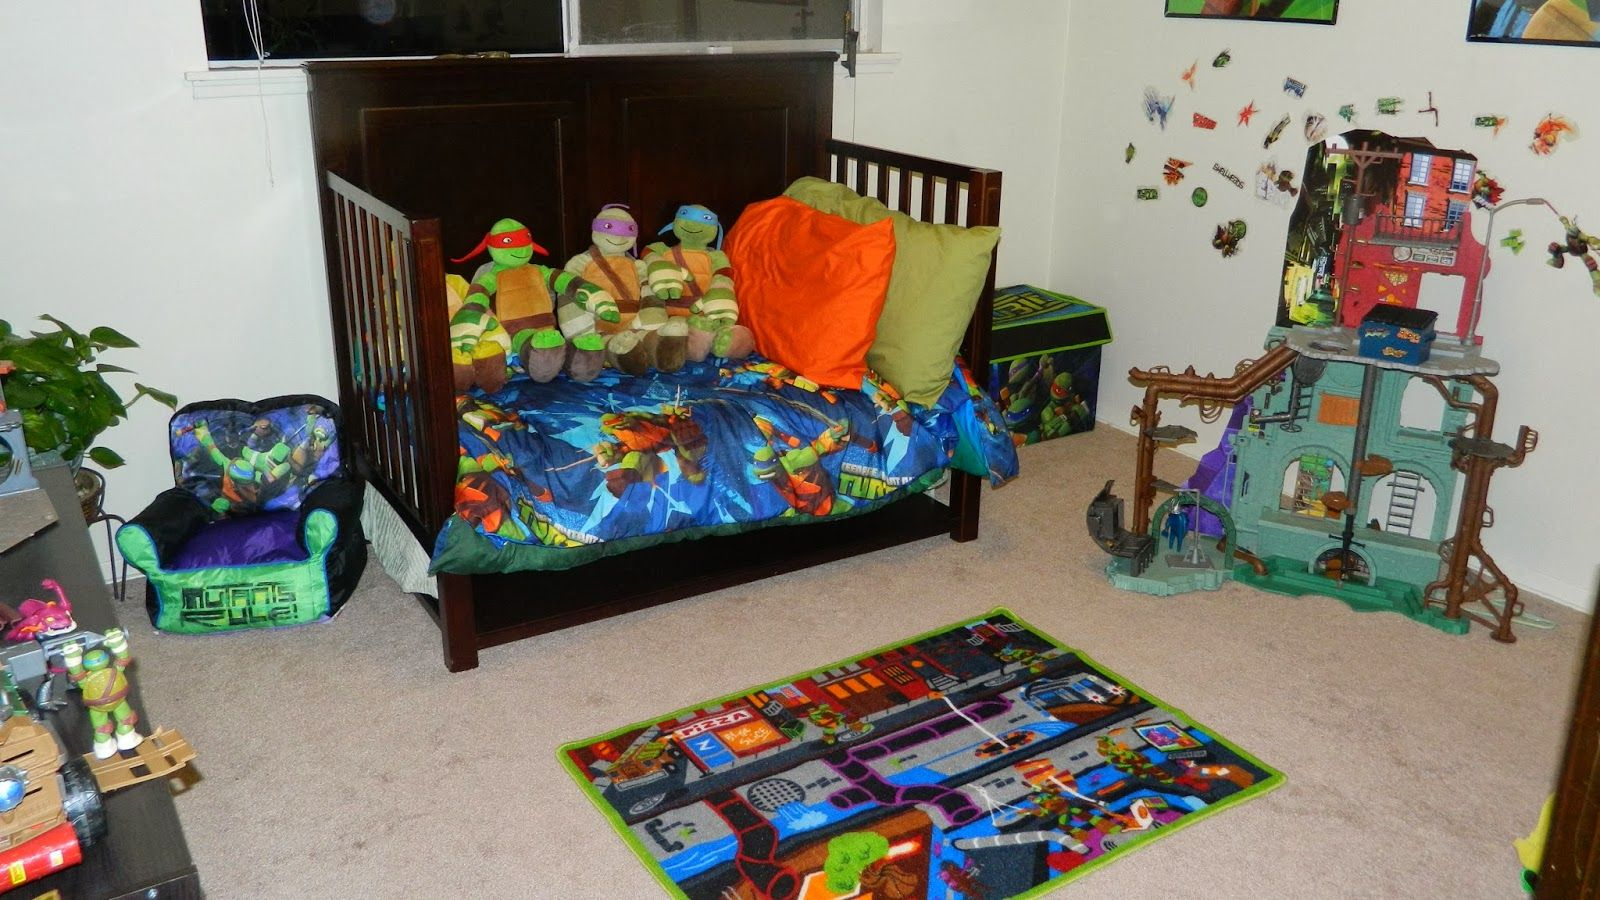 Memoirs From The Belly How We Turned My Son S Room Into An Epic Tmnt